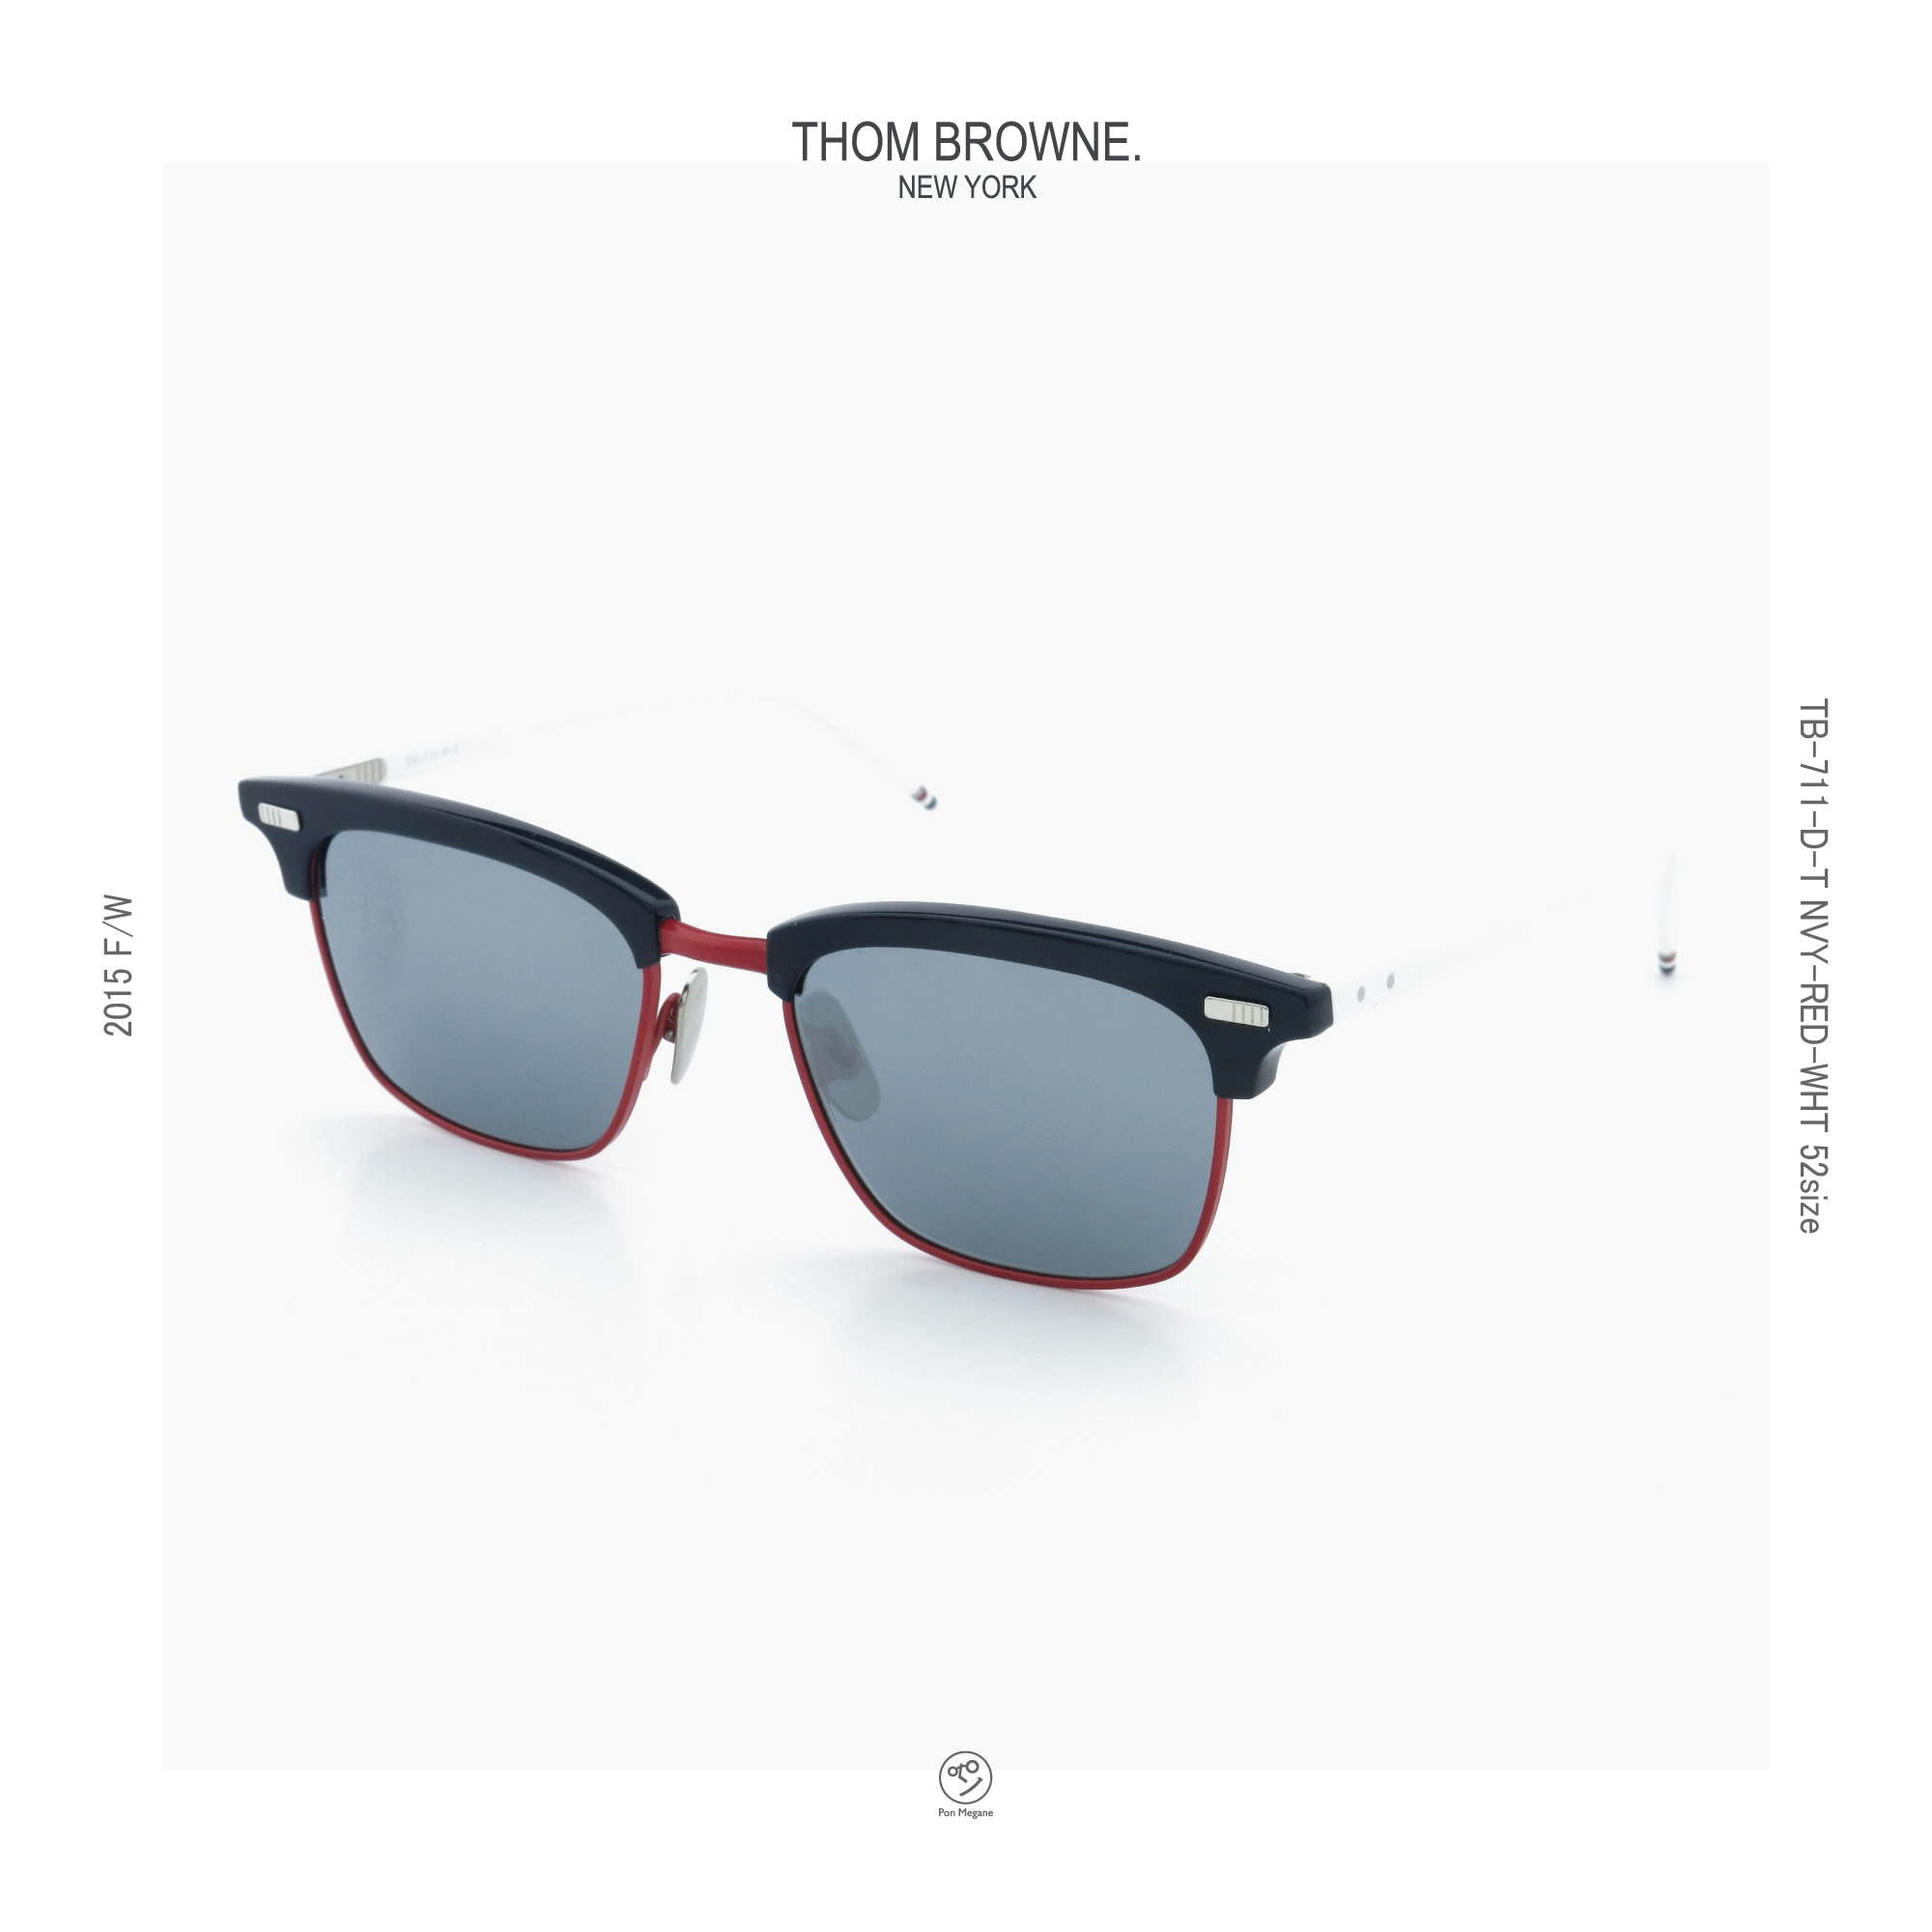 THOM-BROWNE-TB-711-D-T-NVY-RED-WHT-52-DG-SM-insta